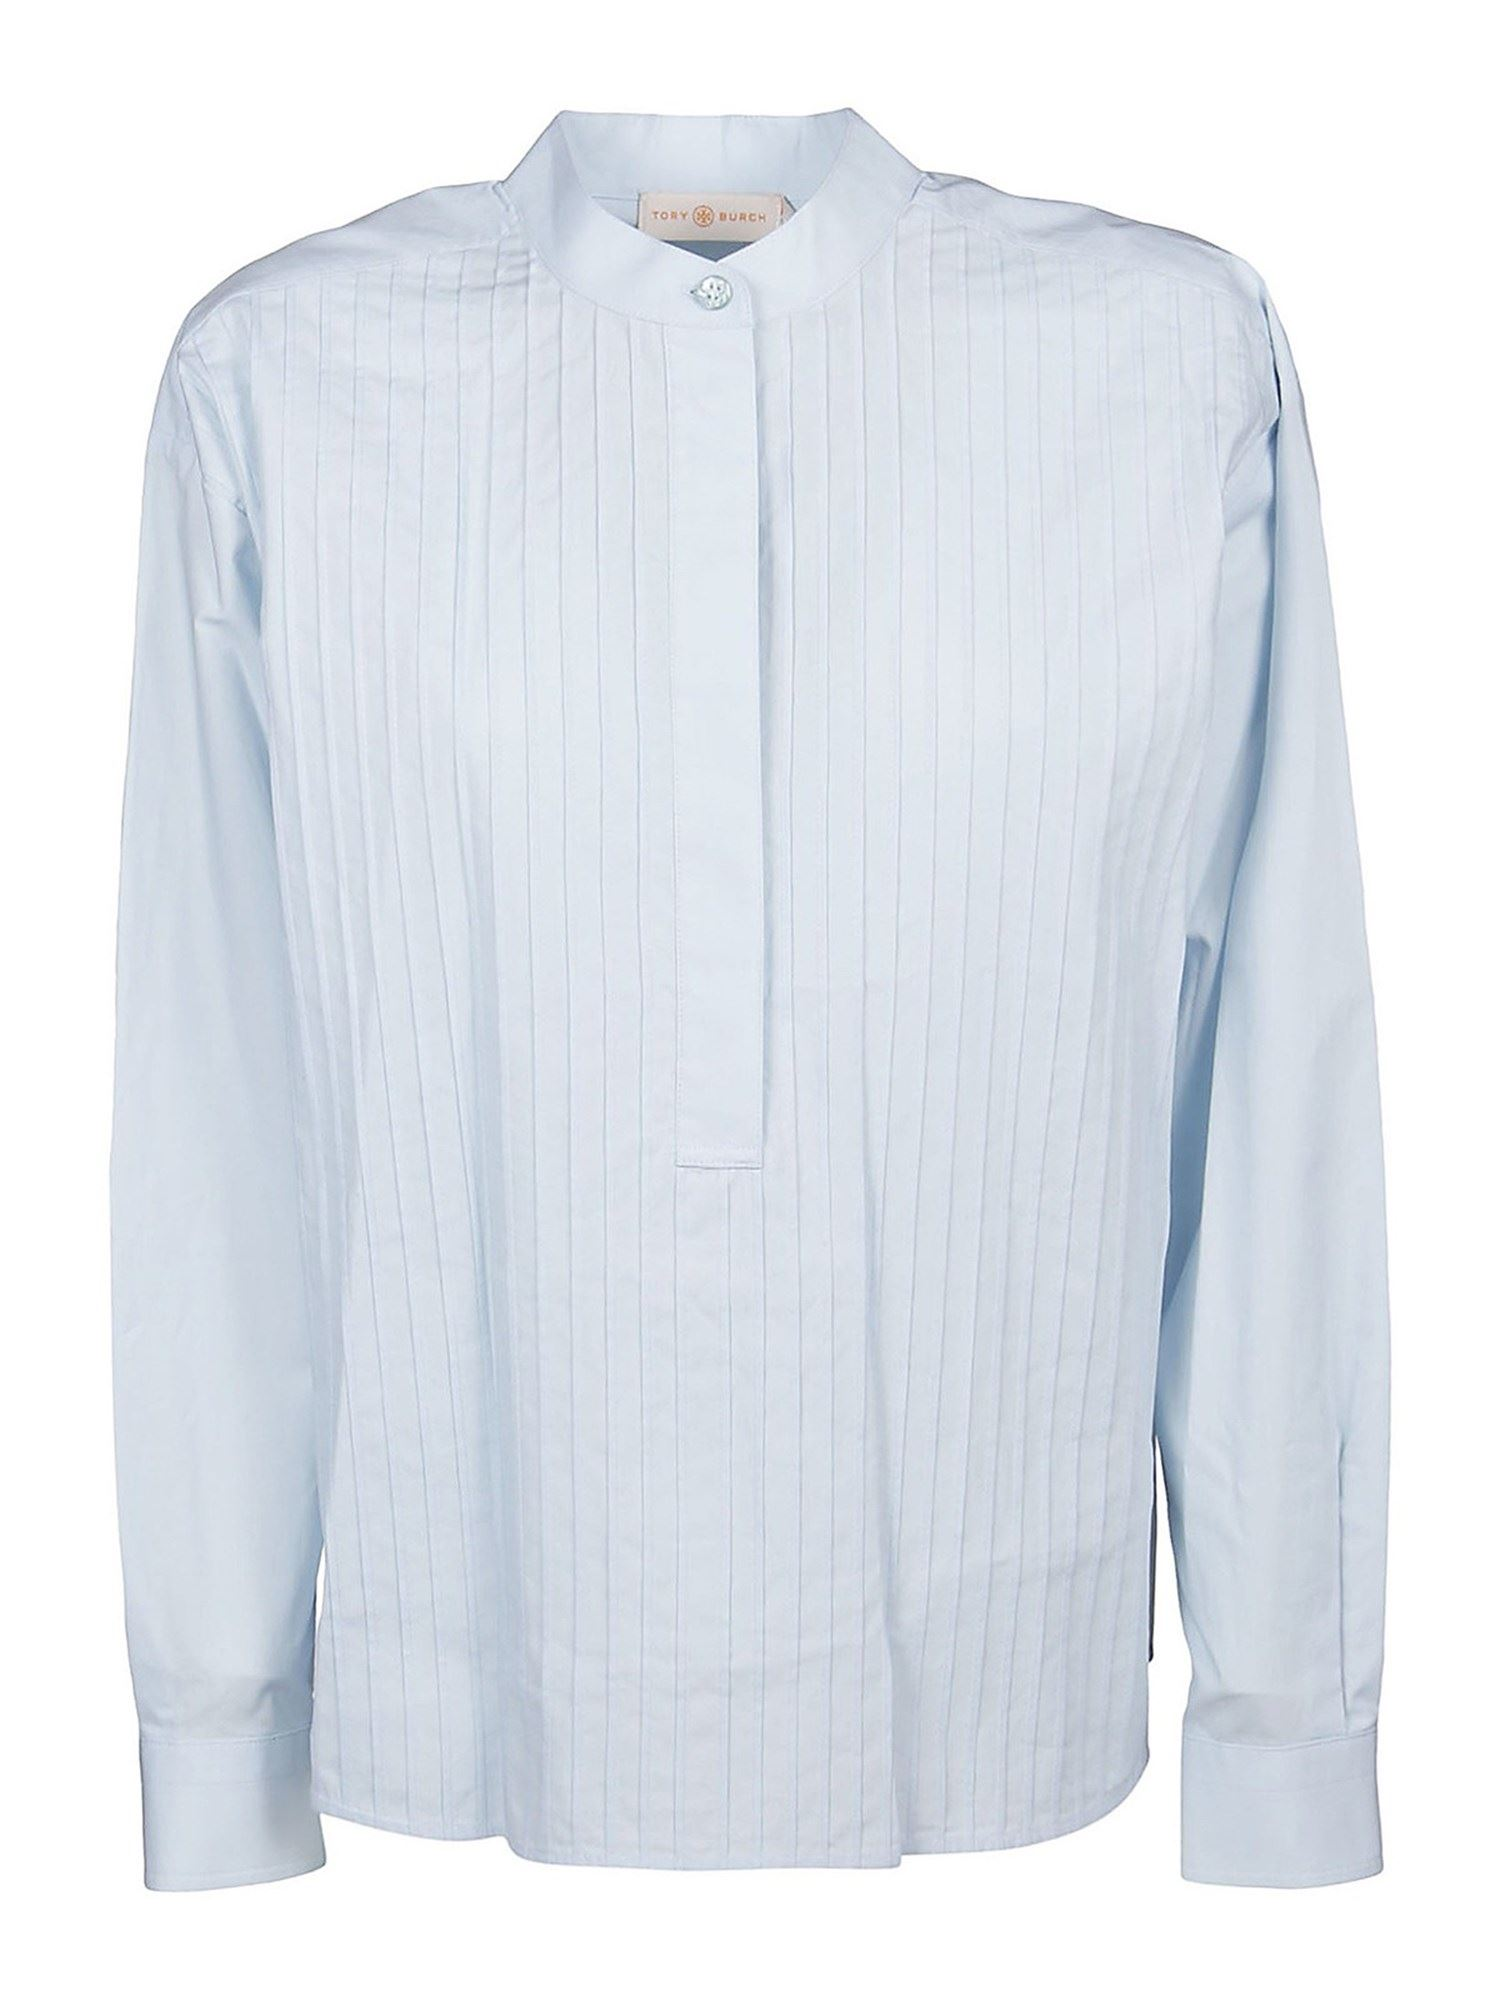 Tory Burch Cottons PLEATED POPLIN SHIRT IN LIGHT BLUE